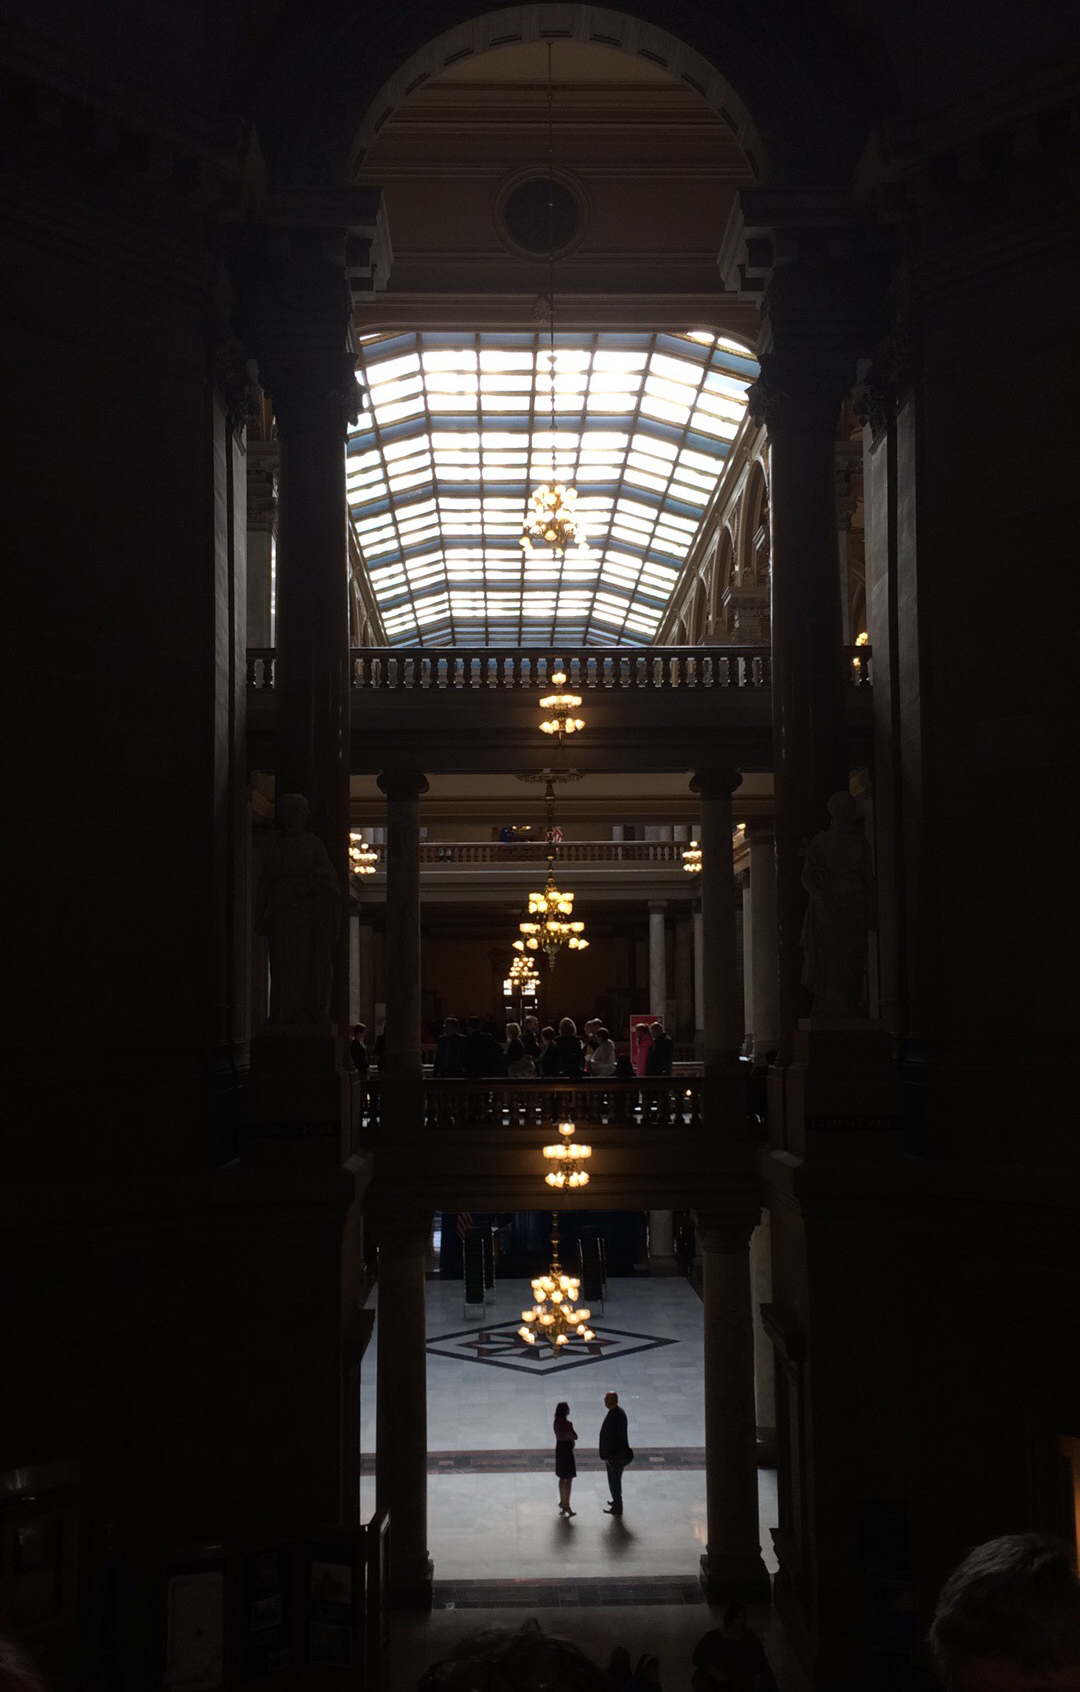 A man and woman are silhouetted at the bottom of the grand staircase at the Indiana State House.